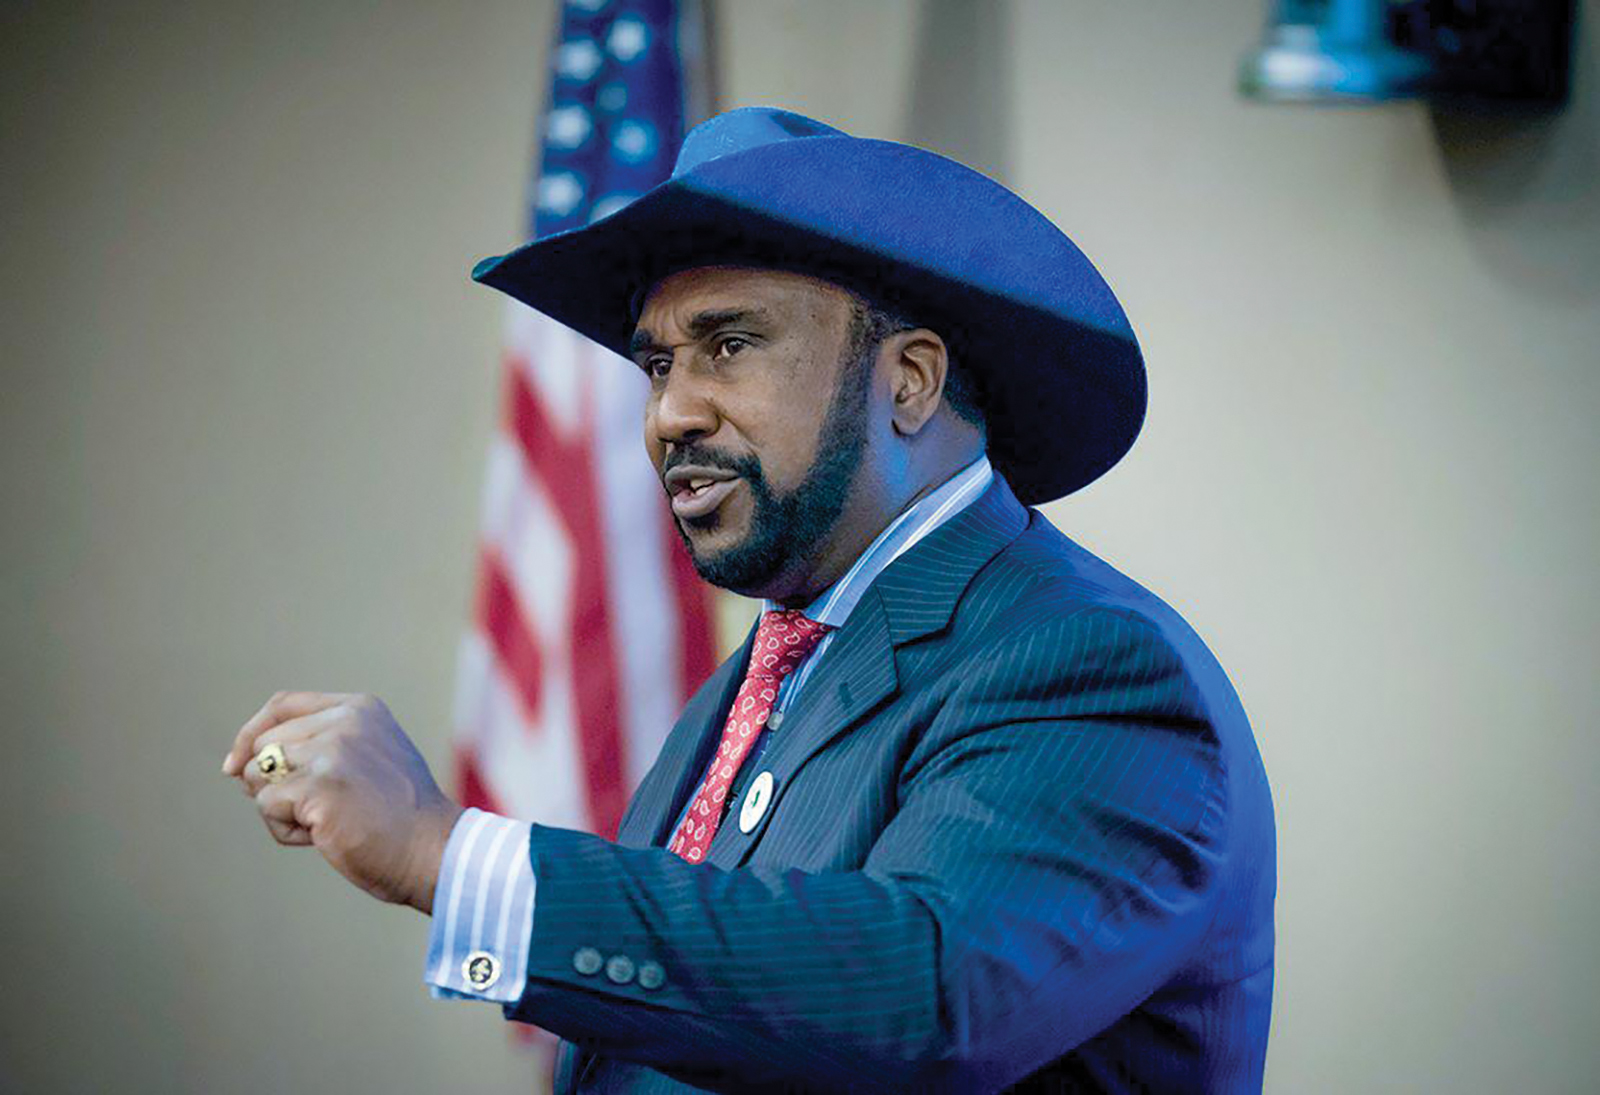 """John W. Boyd Jr. is president of the National Black Farmers' Association and says the black farmers settlement payouts have concluded. """"There's no pot of money to be tapped,"""" Boyd said. """"Obama settled all of that already."""" (Photo: nationalblackfarmersassociation.org)"""